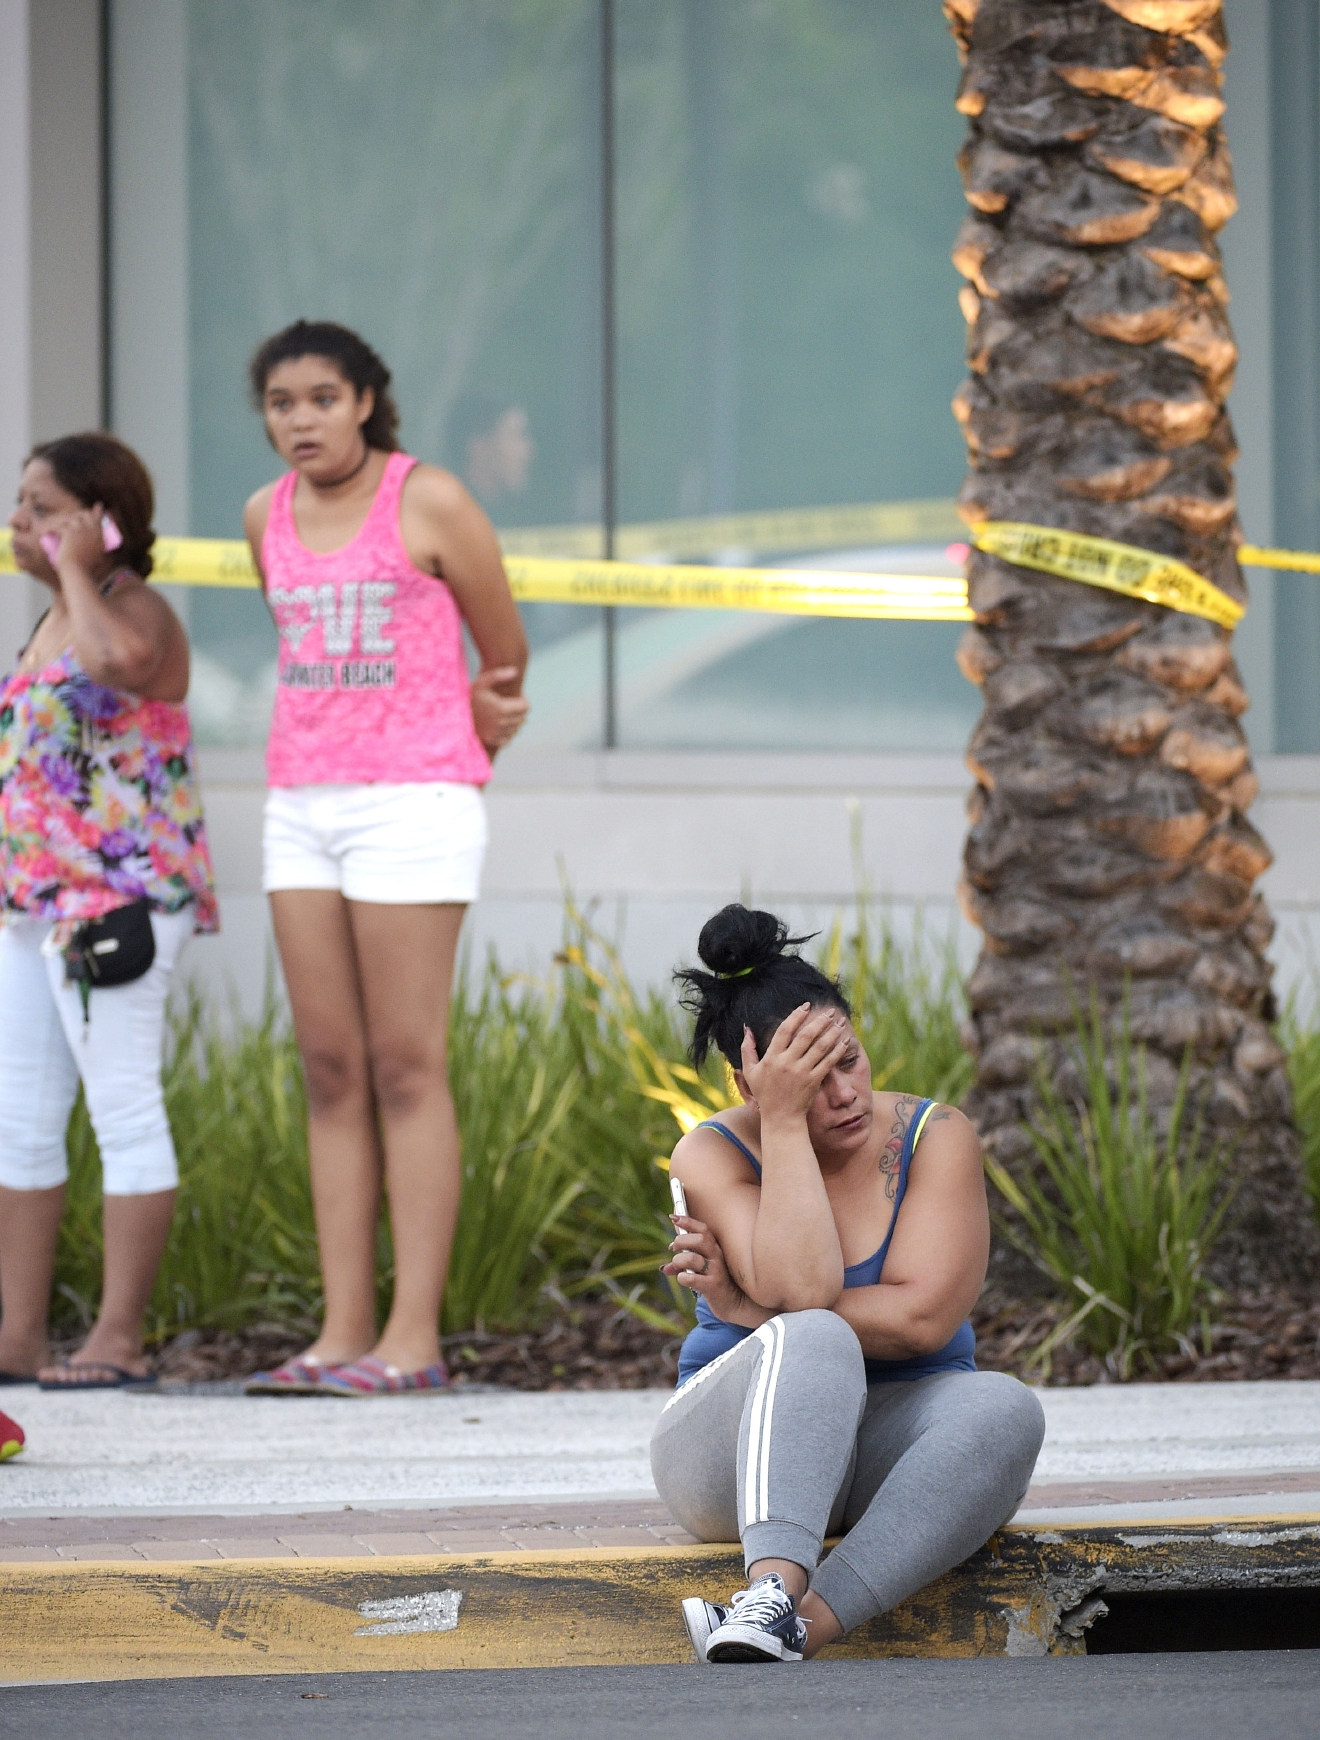 People wait outside the emergency entrance of the Orlando Regional Medical Center hospital after a shooting involving multiple fatalities at Pulse Orlando nightclub in Orlando, Fla., Sunday, June 12, 2016. (AP Photo/Phelan M. Ebenhack)